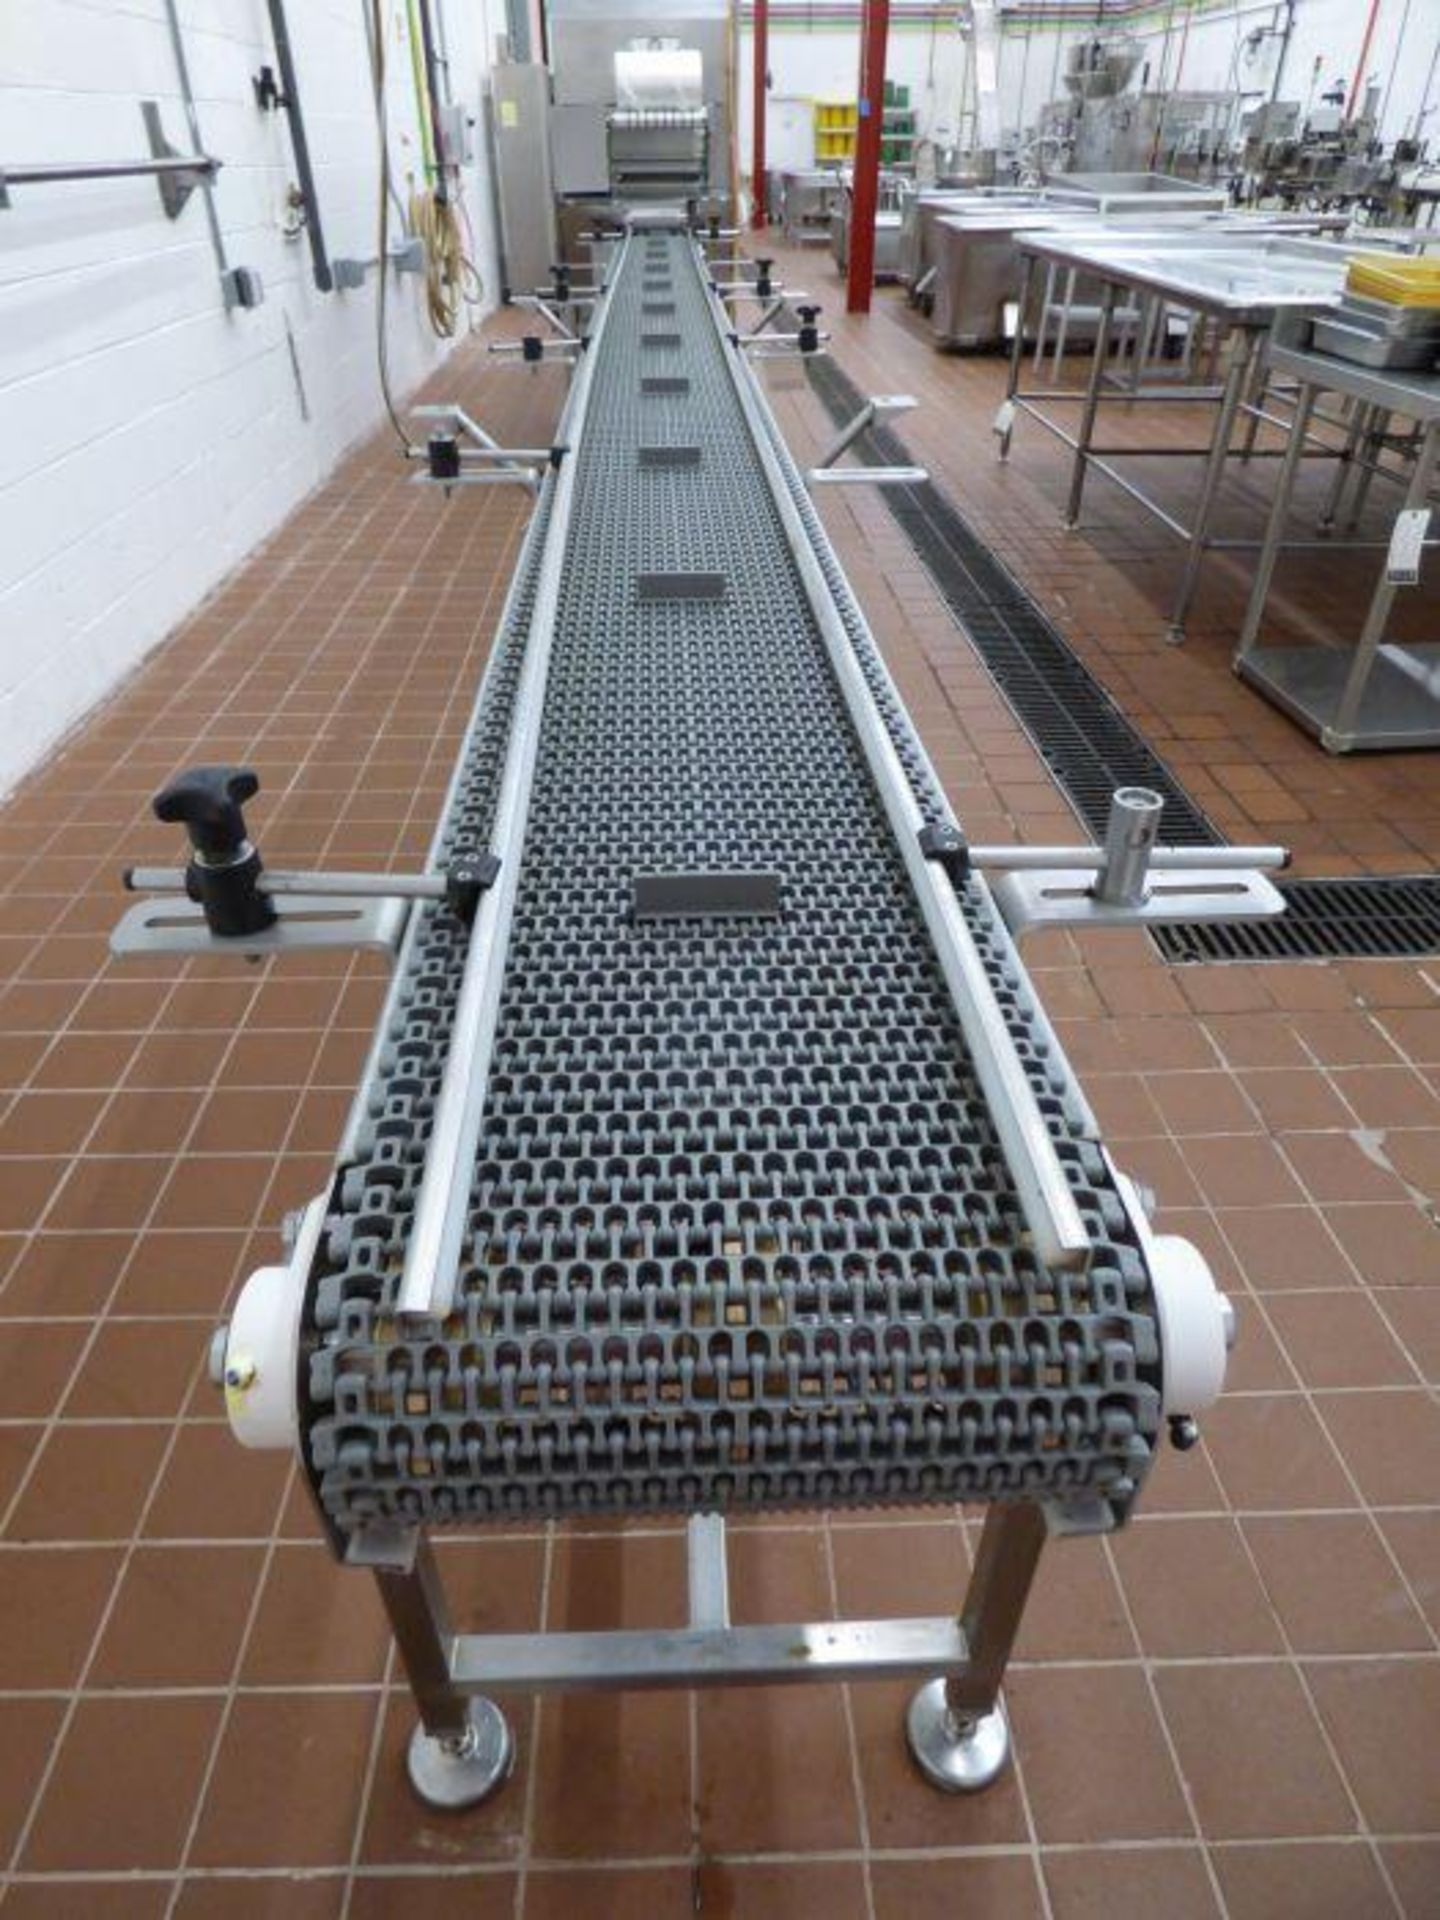 Lot 1113 - Stainless Steel Manual Packing Station